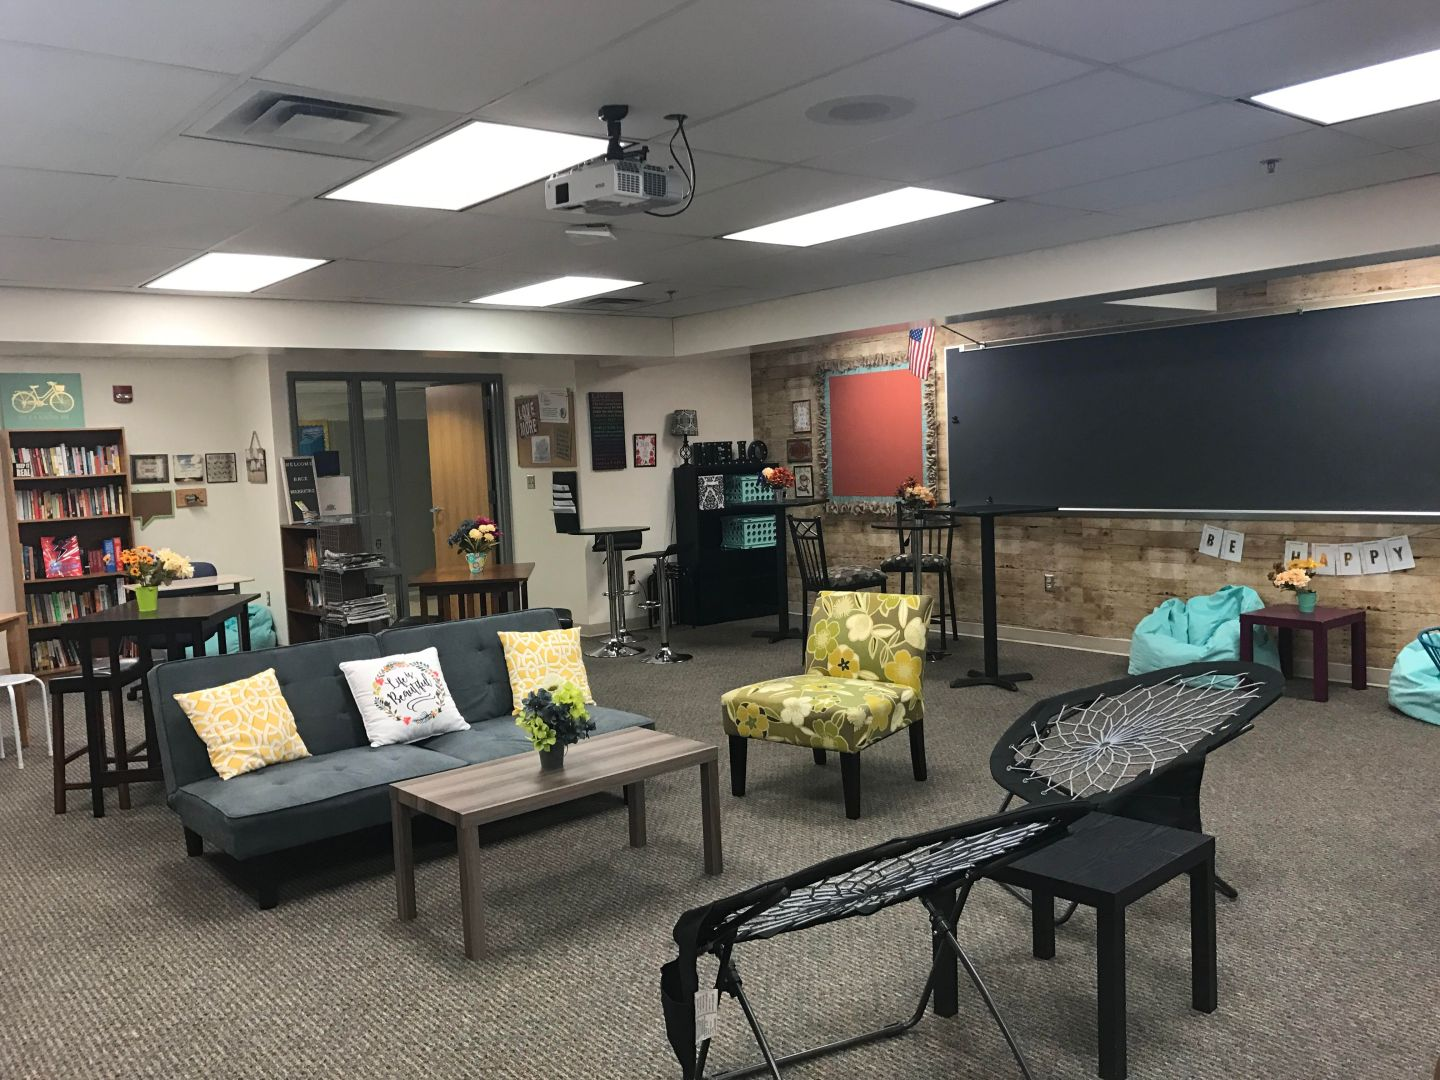 Comfort in the Classroom with Flexible Seating